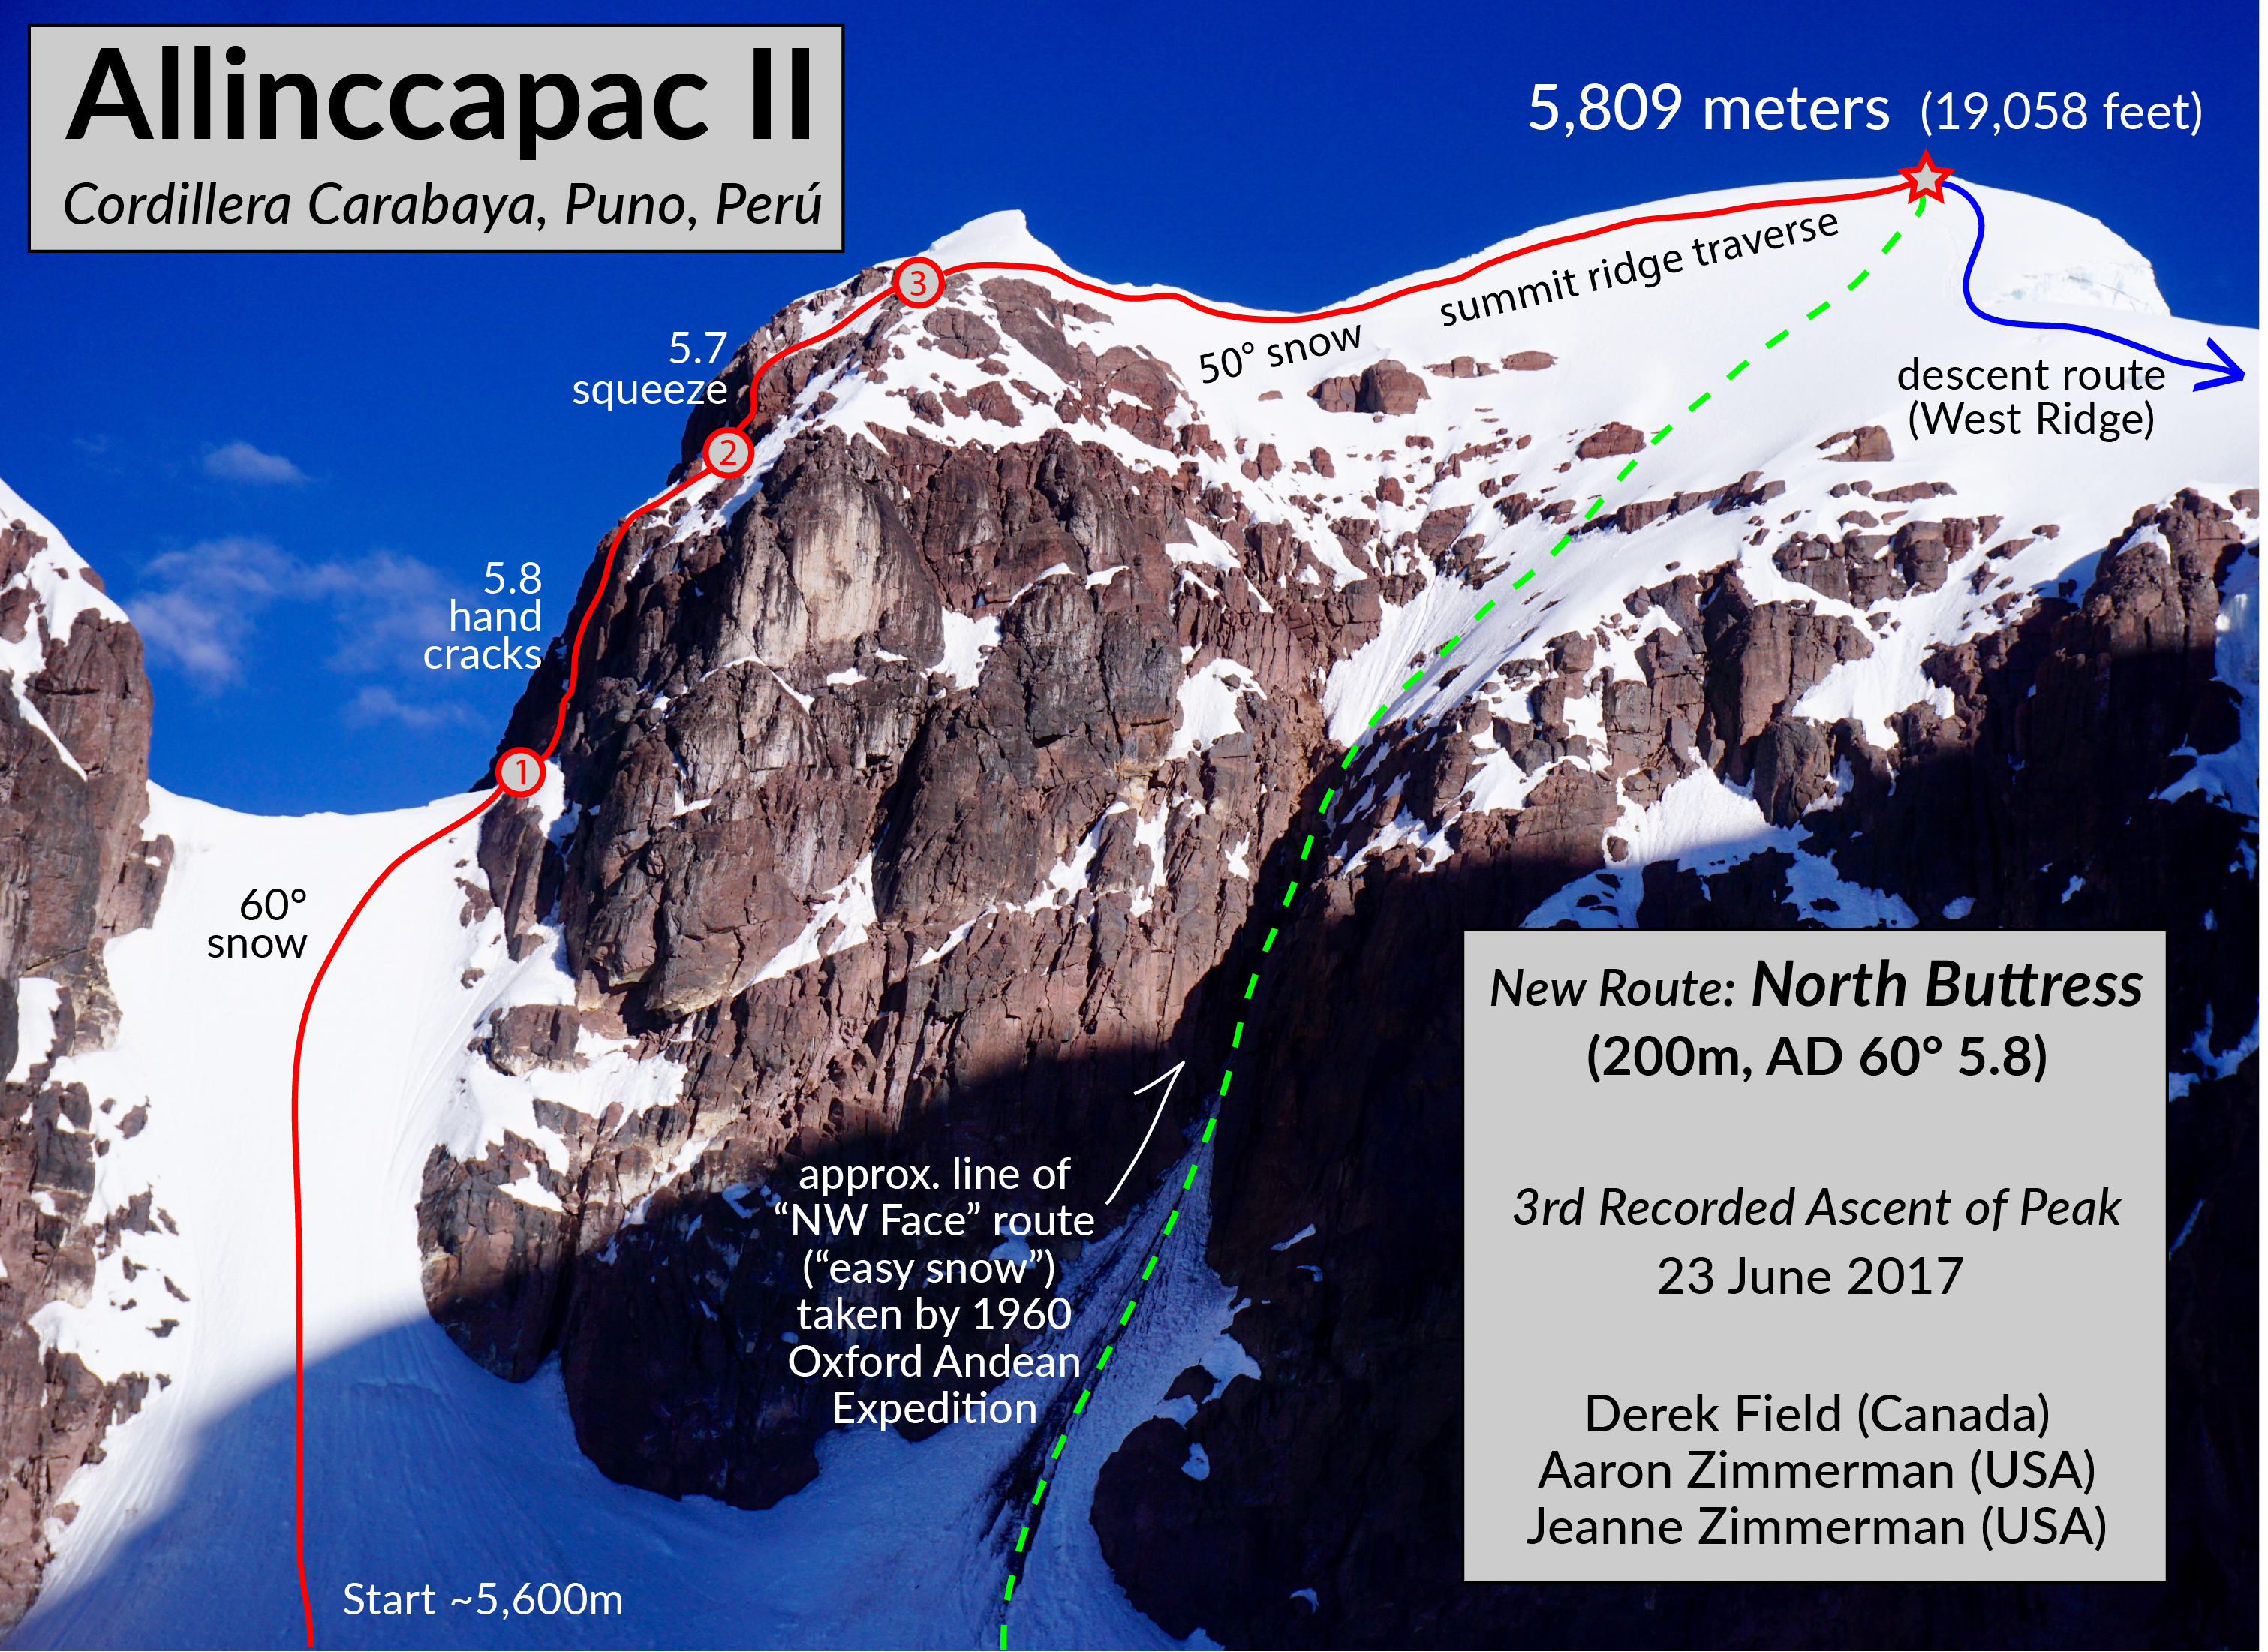 Route topo for the North Buttress of Allinccapac II. Pico Carol east ridge topo – the east ridge of Pico Carol with 2016 and 2017 lines drawn.